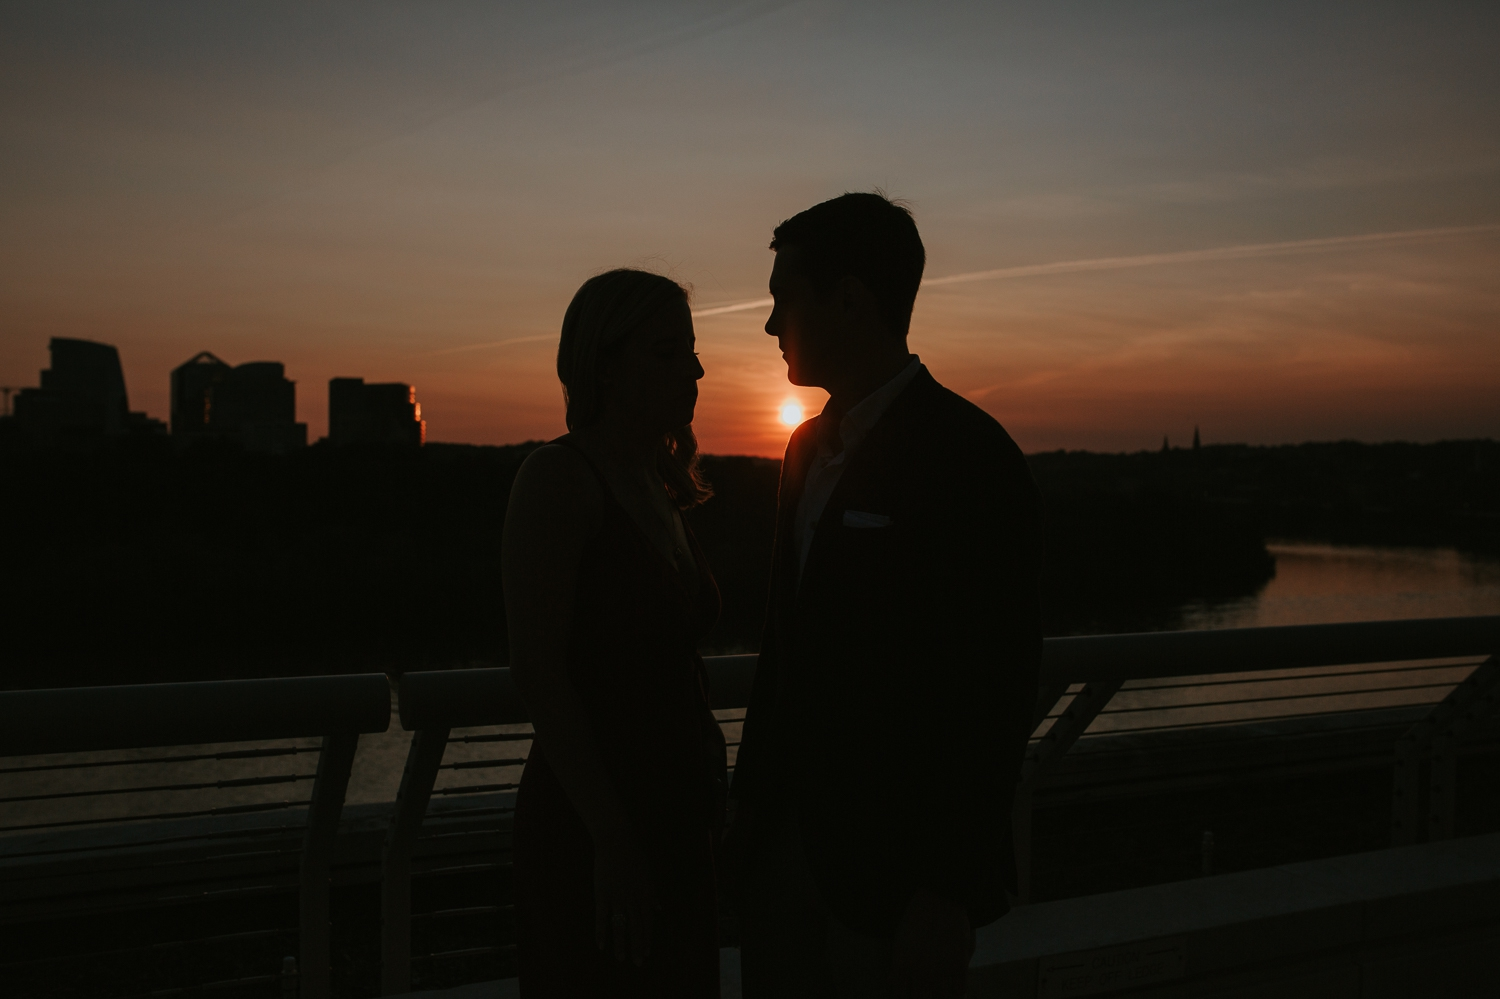 washington-dc-kennedy-center-rooftop-sunset-engagement-photography 24.jpg